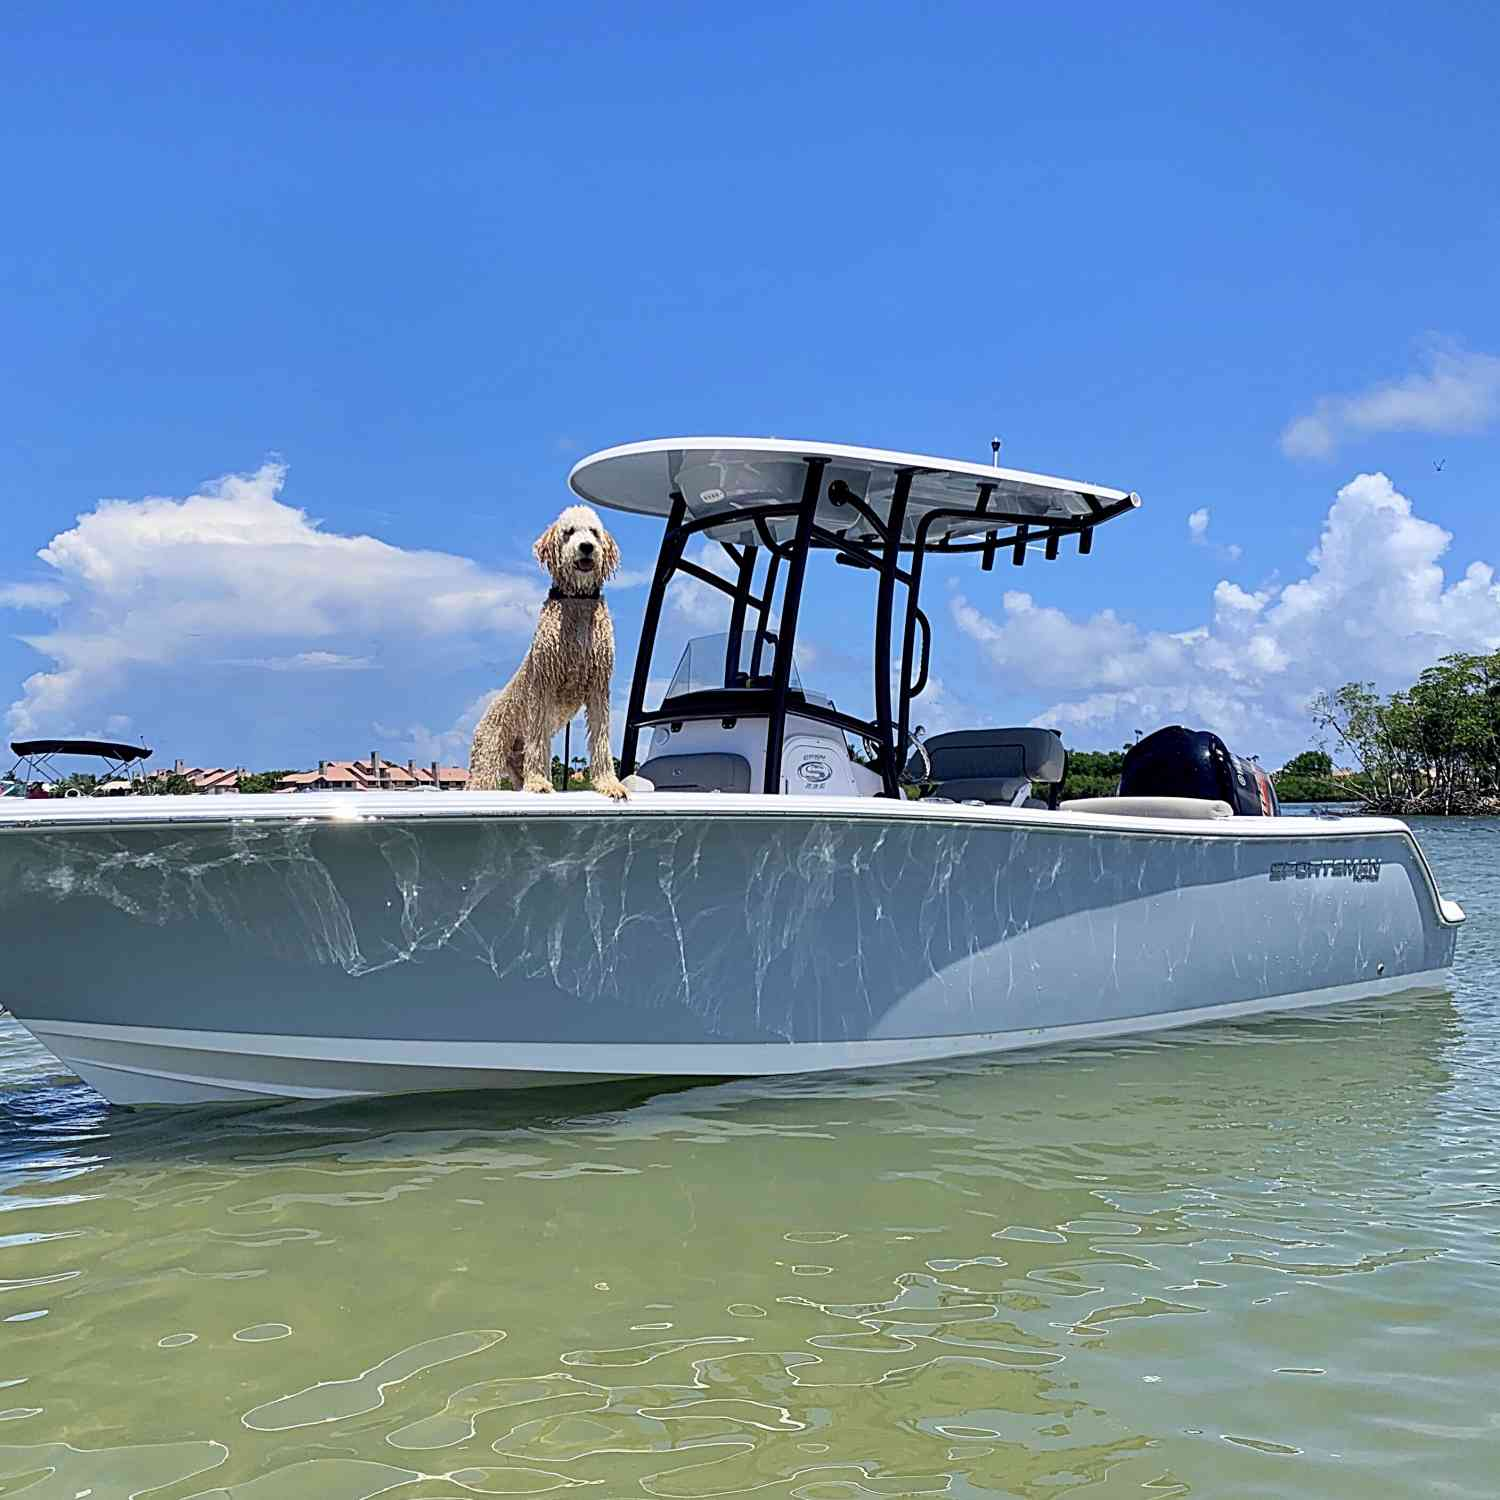 Title: Captain Maverick - On board their Sportsman Heritage 231 Center Console - Location: Stuart, Florida. Participating in the Photo Contest #SportsmanAugust2020